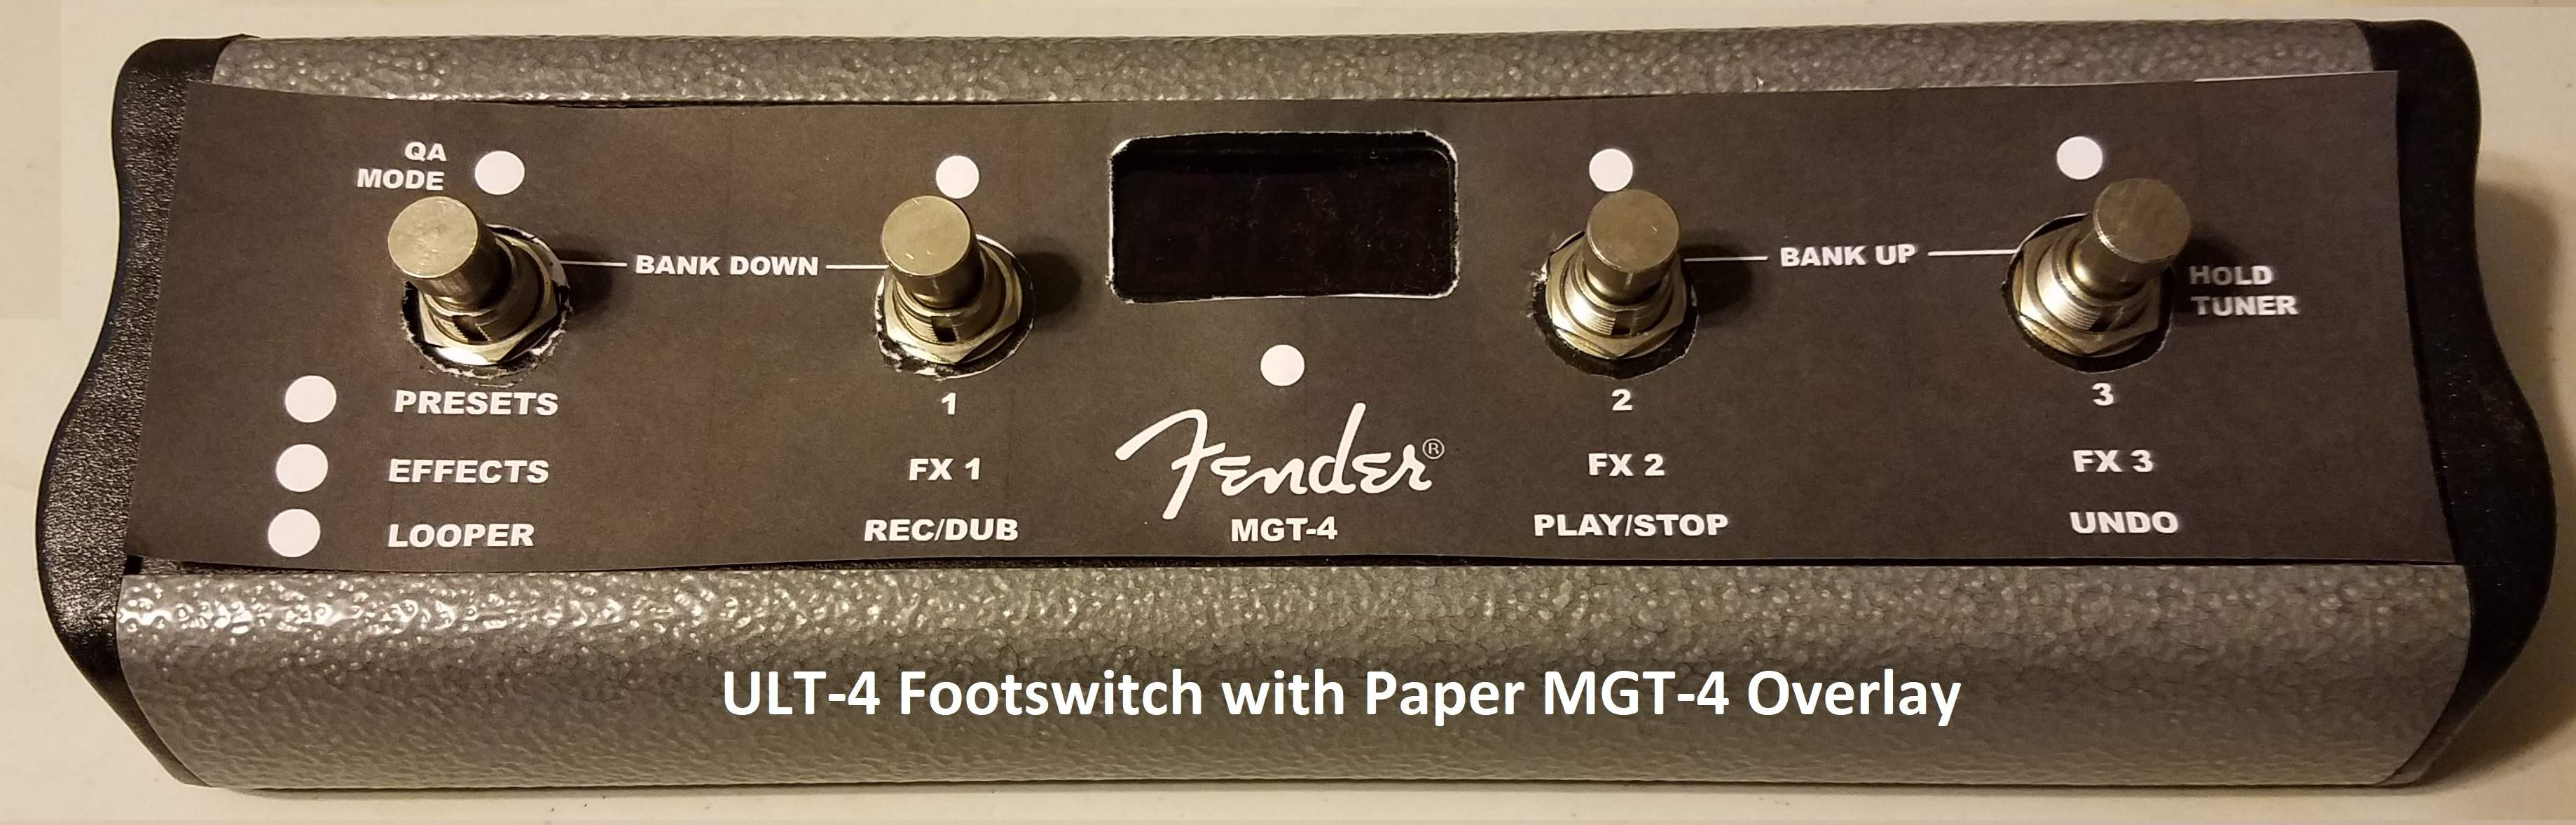 MGT-4 Footswitch paper overlay.jpg